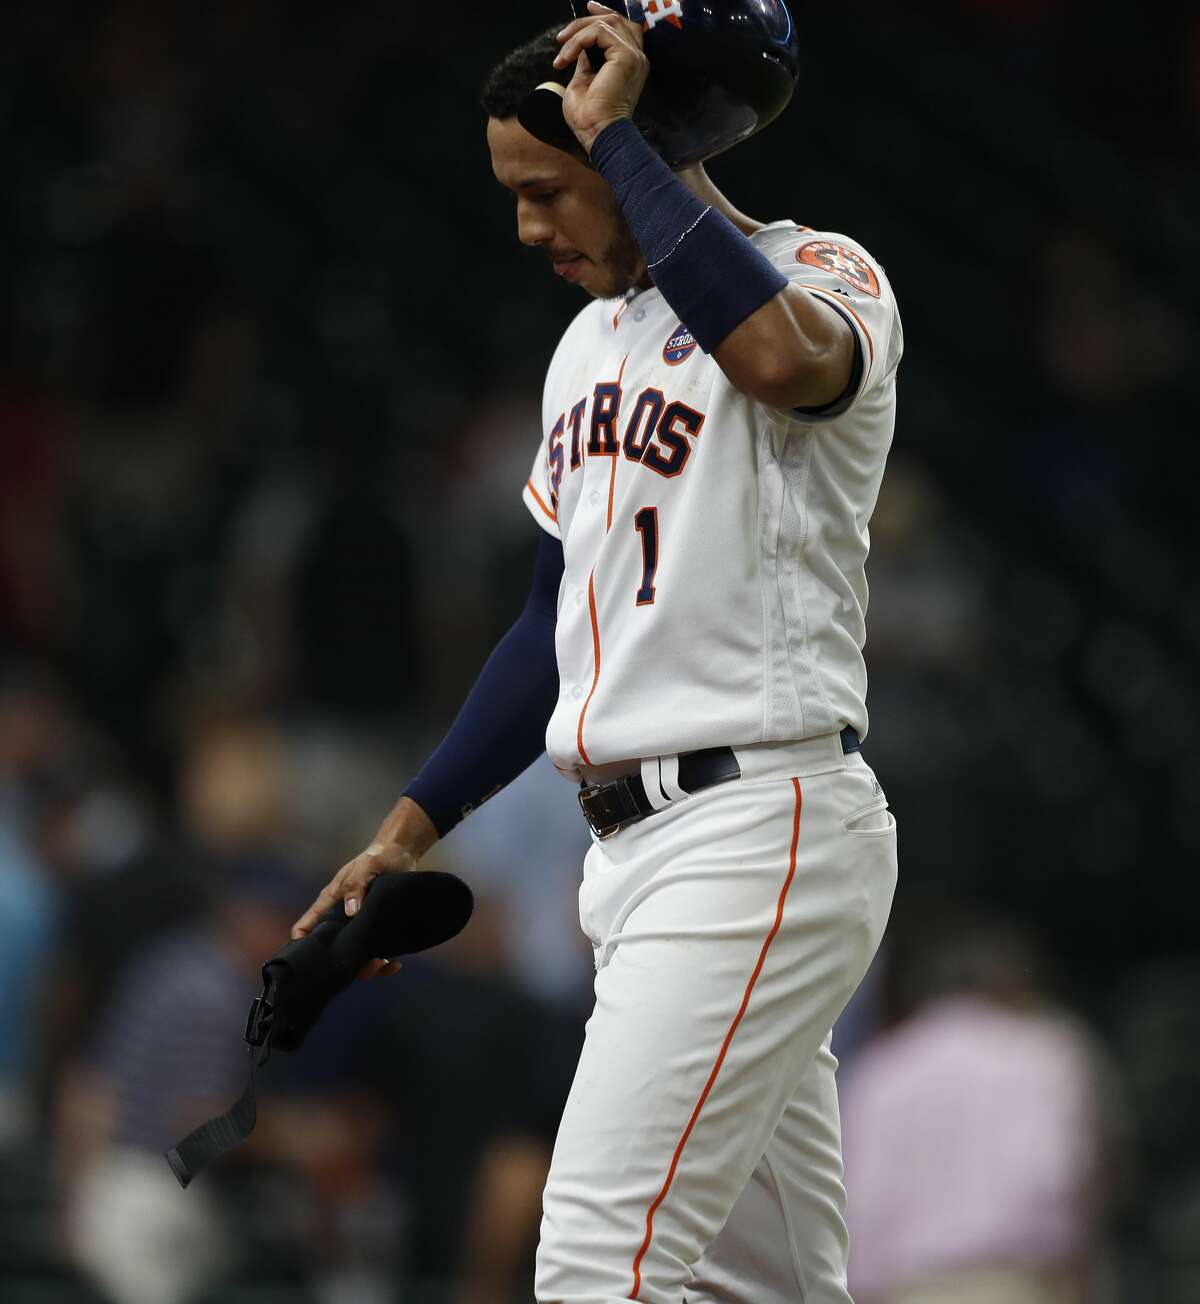 Houston Astros Carlos Correa (1) reacts as he walks back to the dugout after being left on base in the ninth inning of an MLB baseball game at Minute Maid Park, Thursday, Sept. 21, 2017, in Houston. ( Karen Warren / Houston Chronicle )